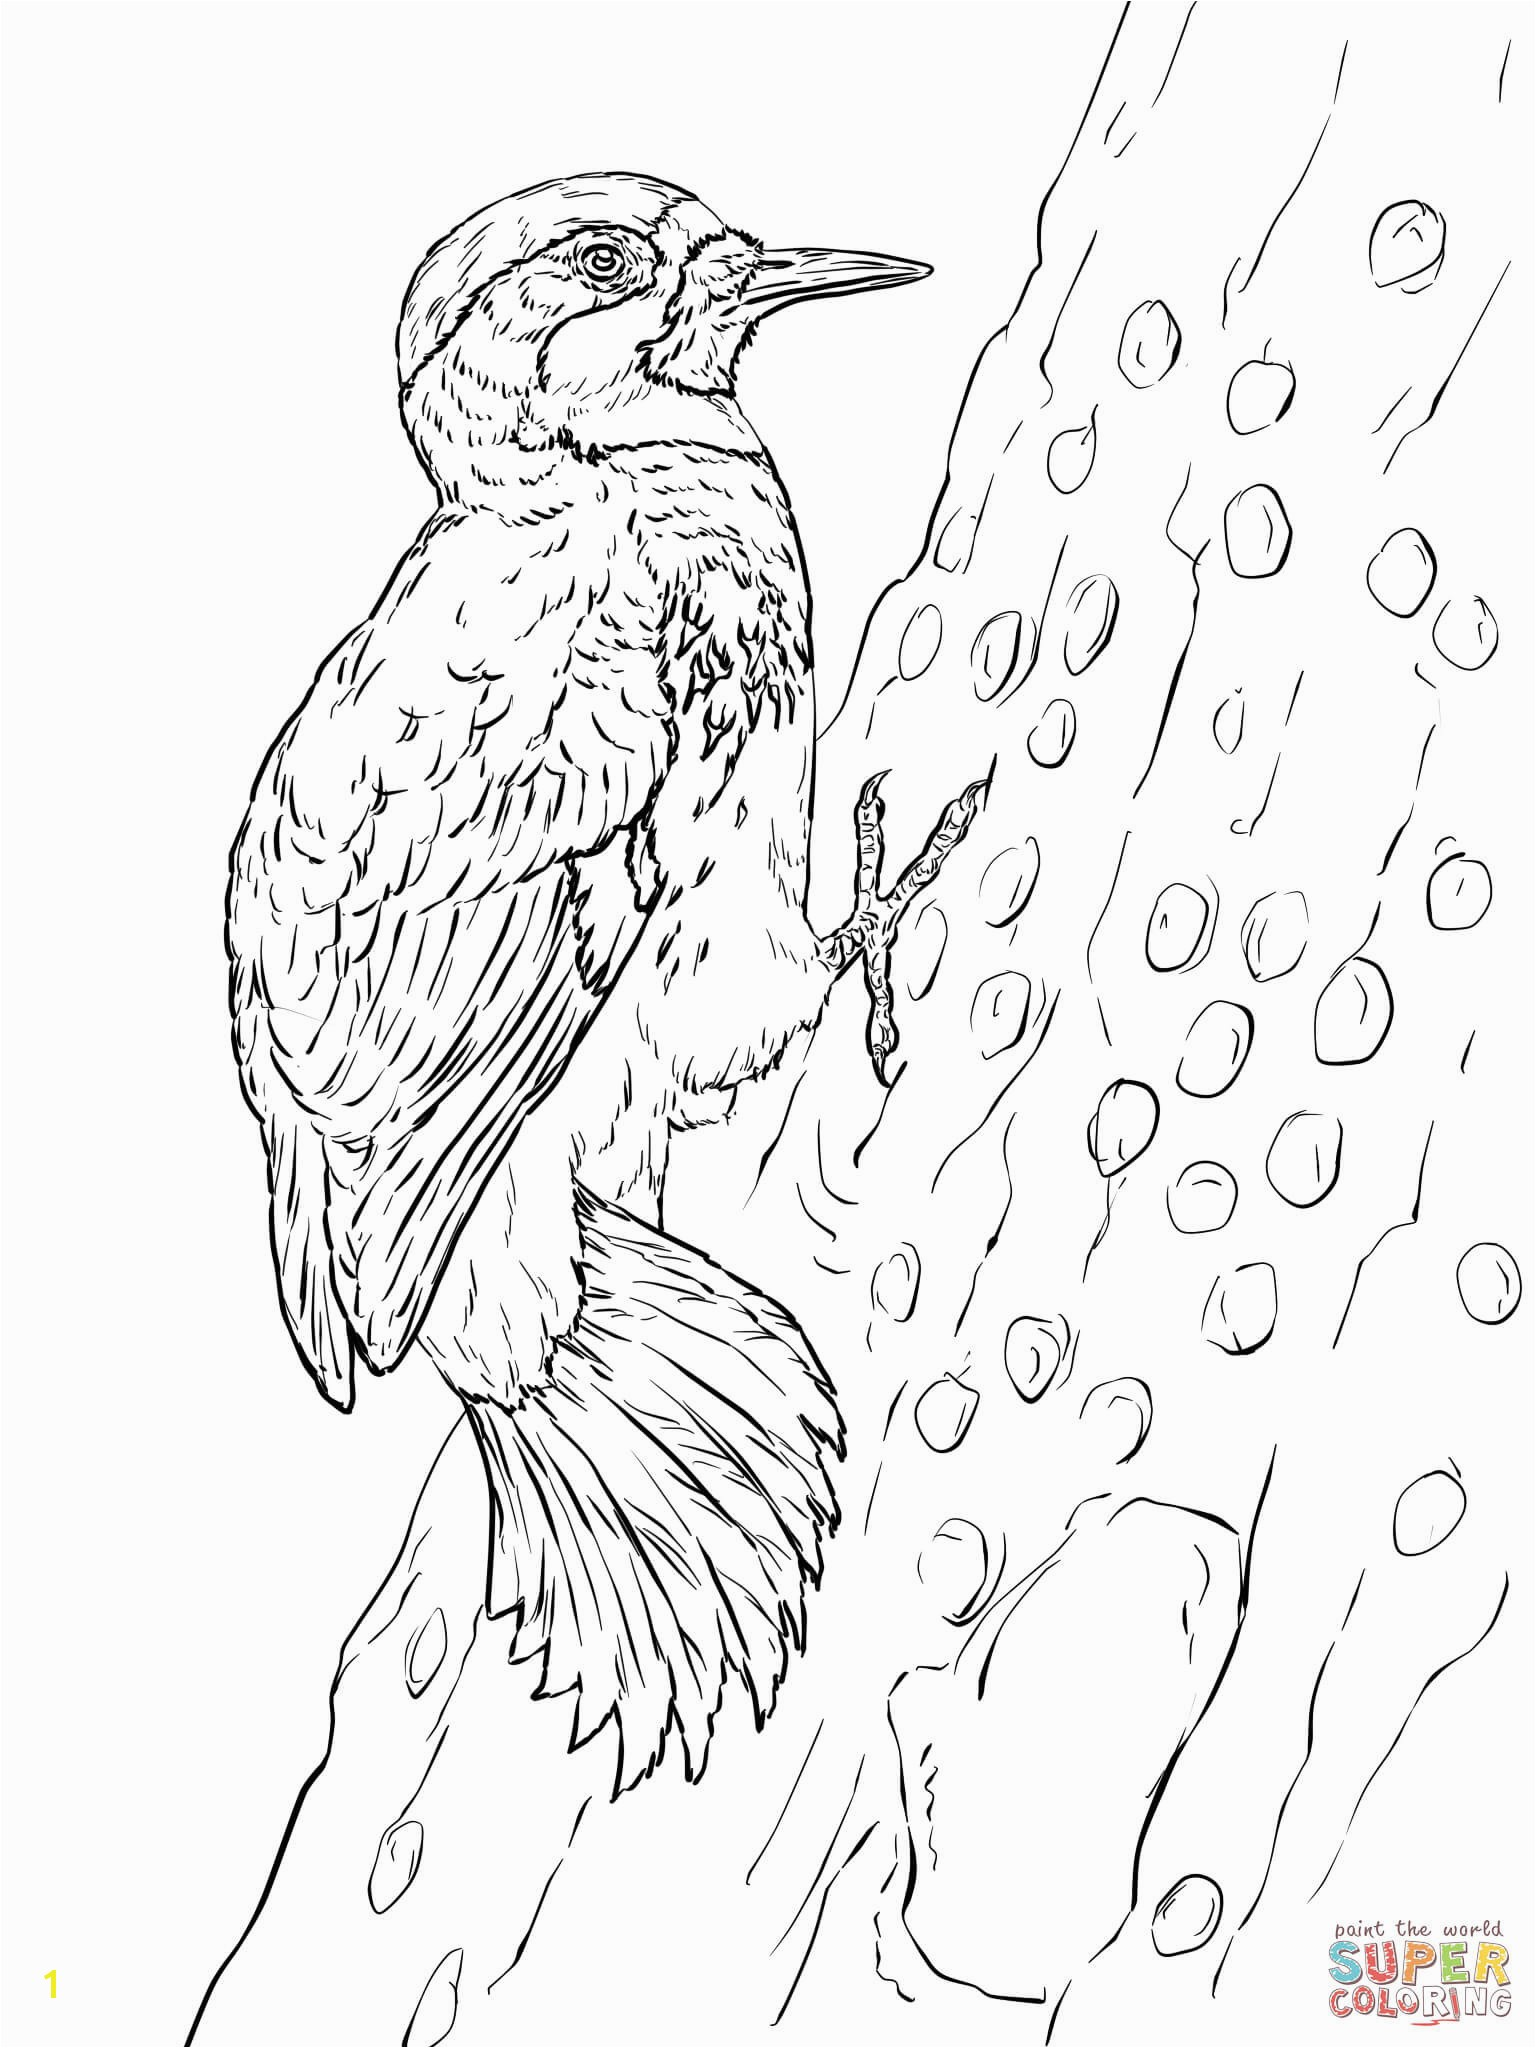 Pileated Woodpecker Coloring Page Elegant Timely Woodpecker Coloring Page Woodpeckers Pages Free 5576 Pileated Woodpecker